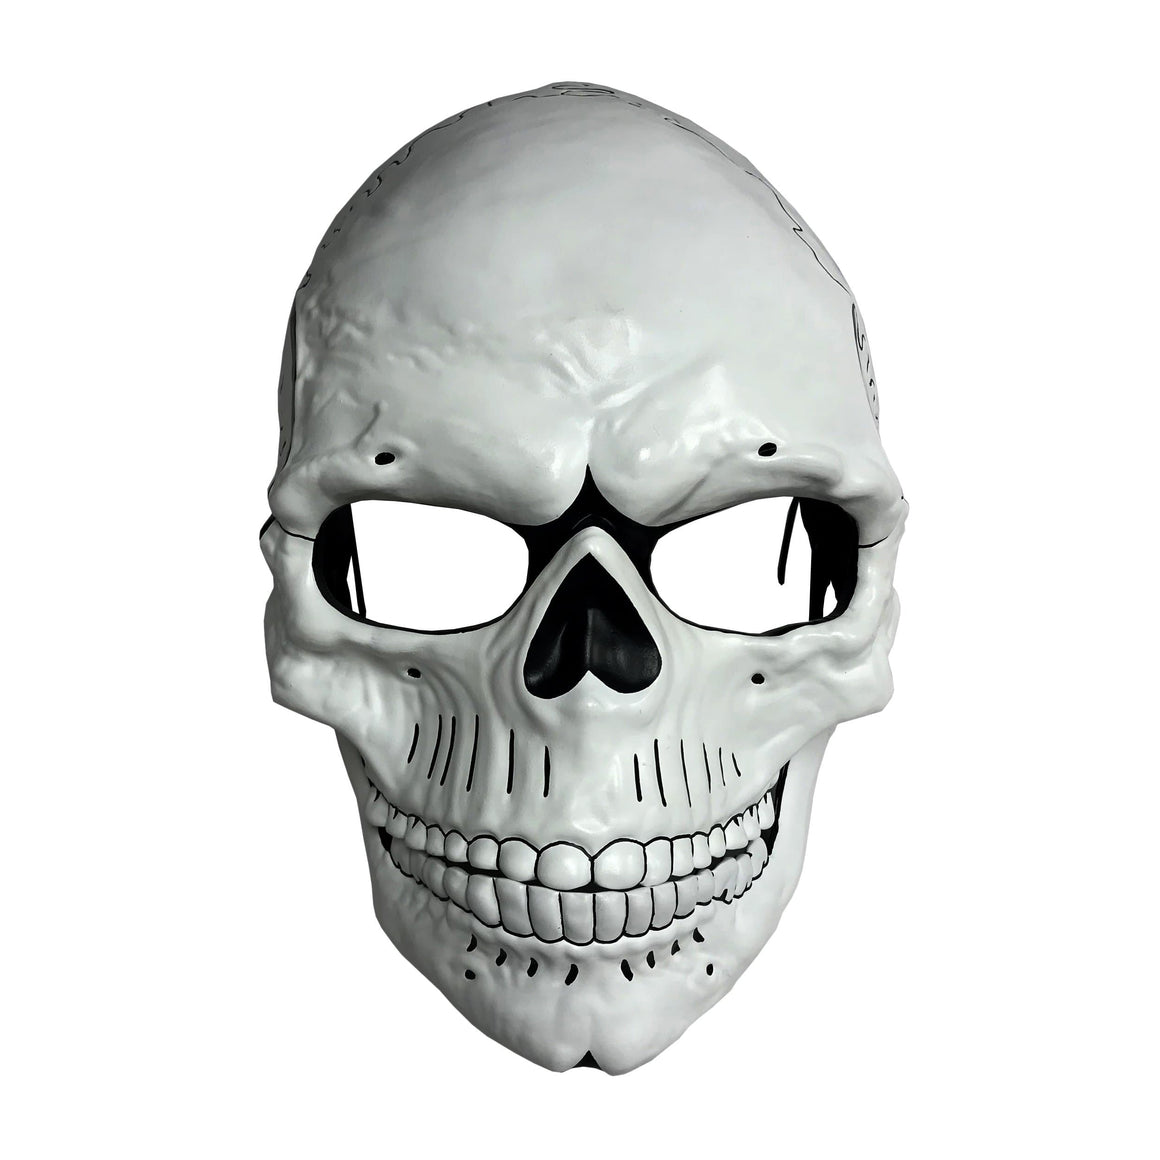 James Bond Day of the Dead Skull Mask Prop Replica - Spectre Numbered Edition - 007STORE